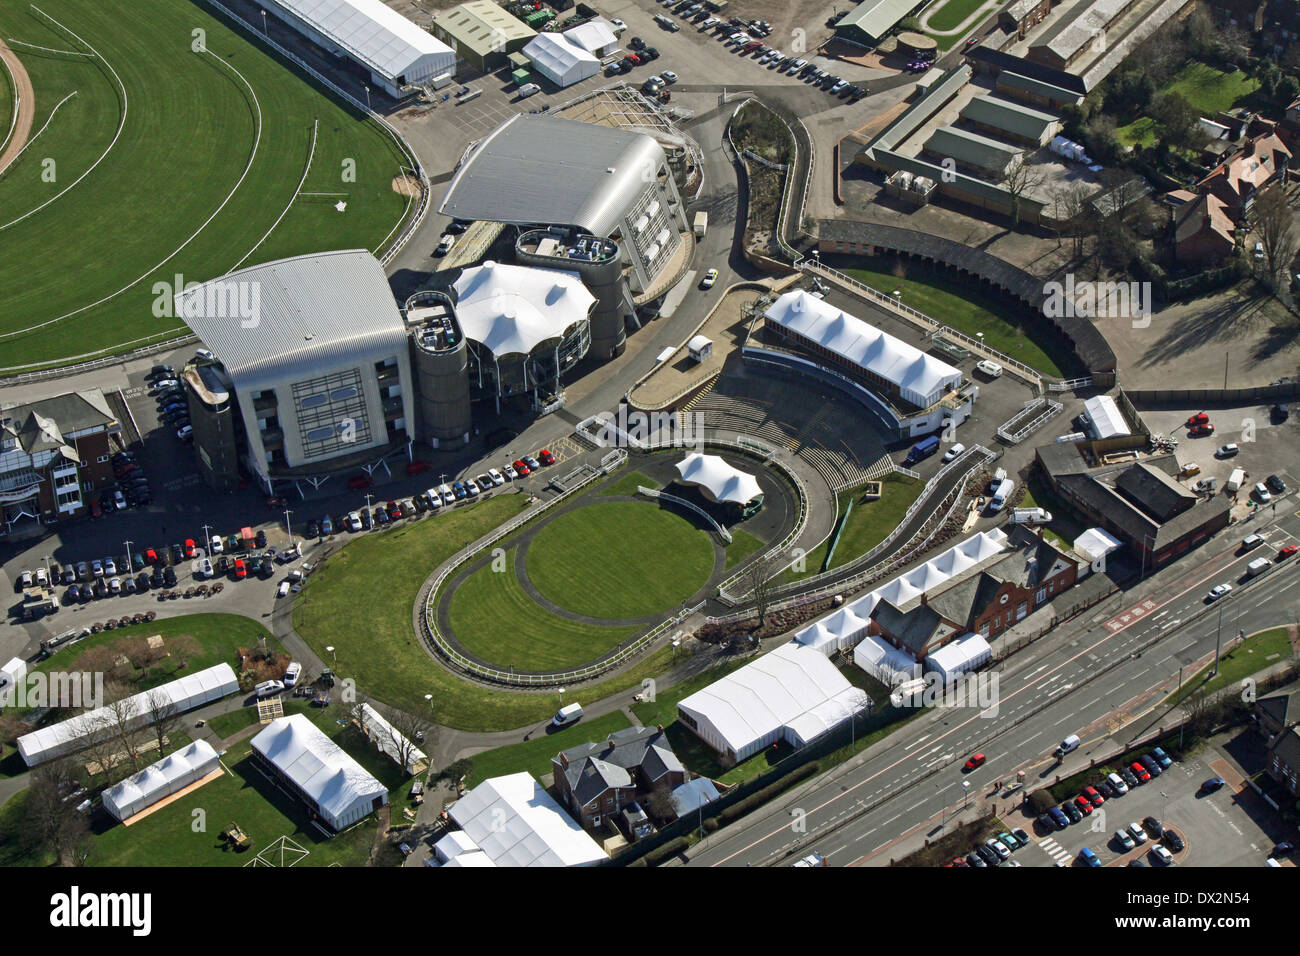 aerial view of Aintree Racecourse in Liverpool, home of the Grand National Stock Photo